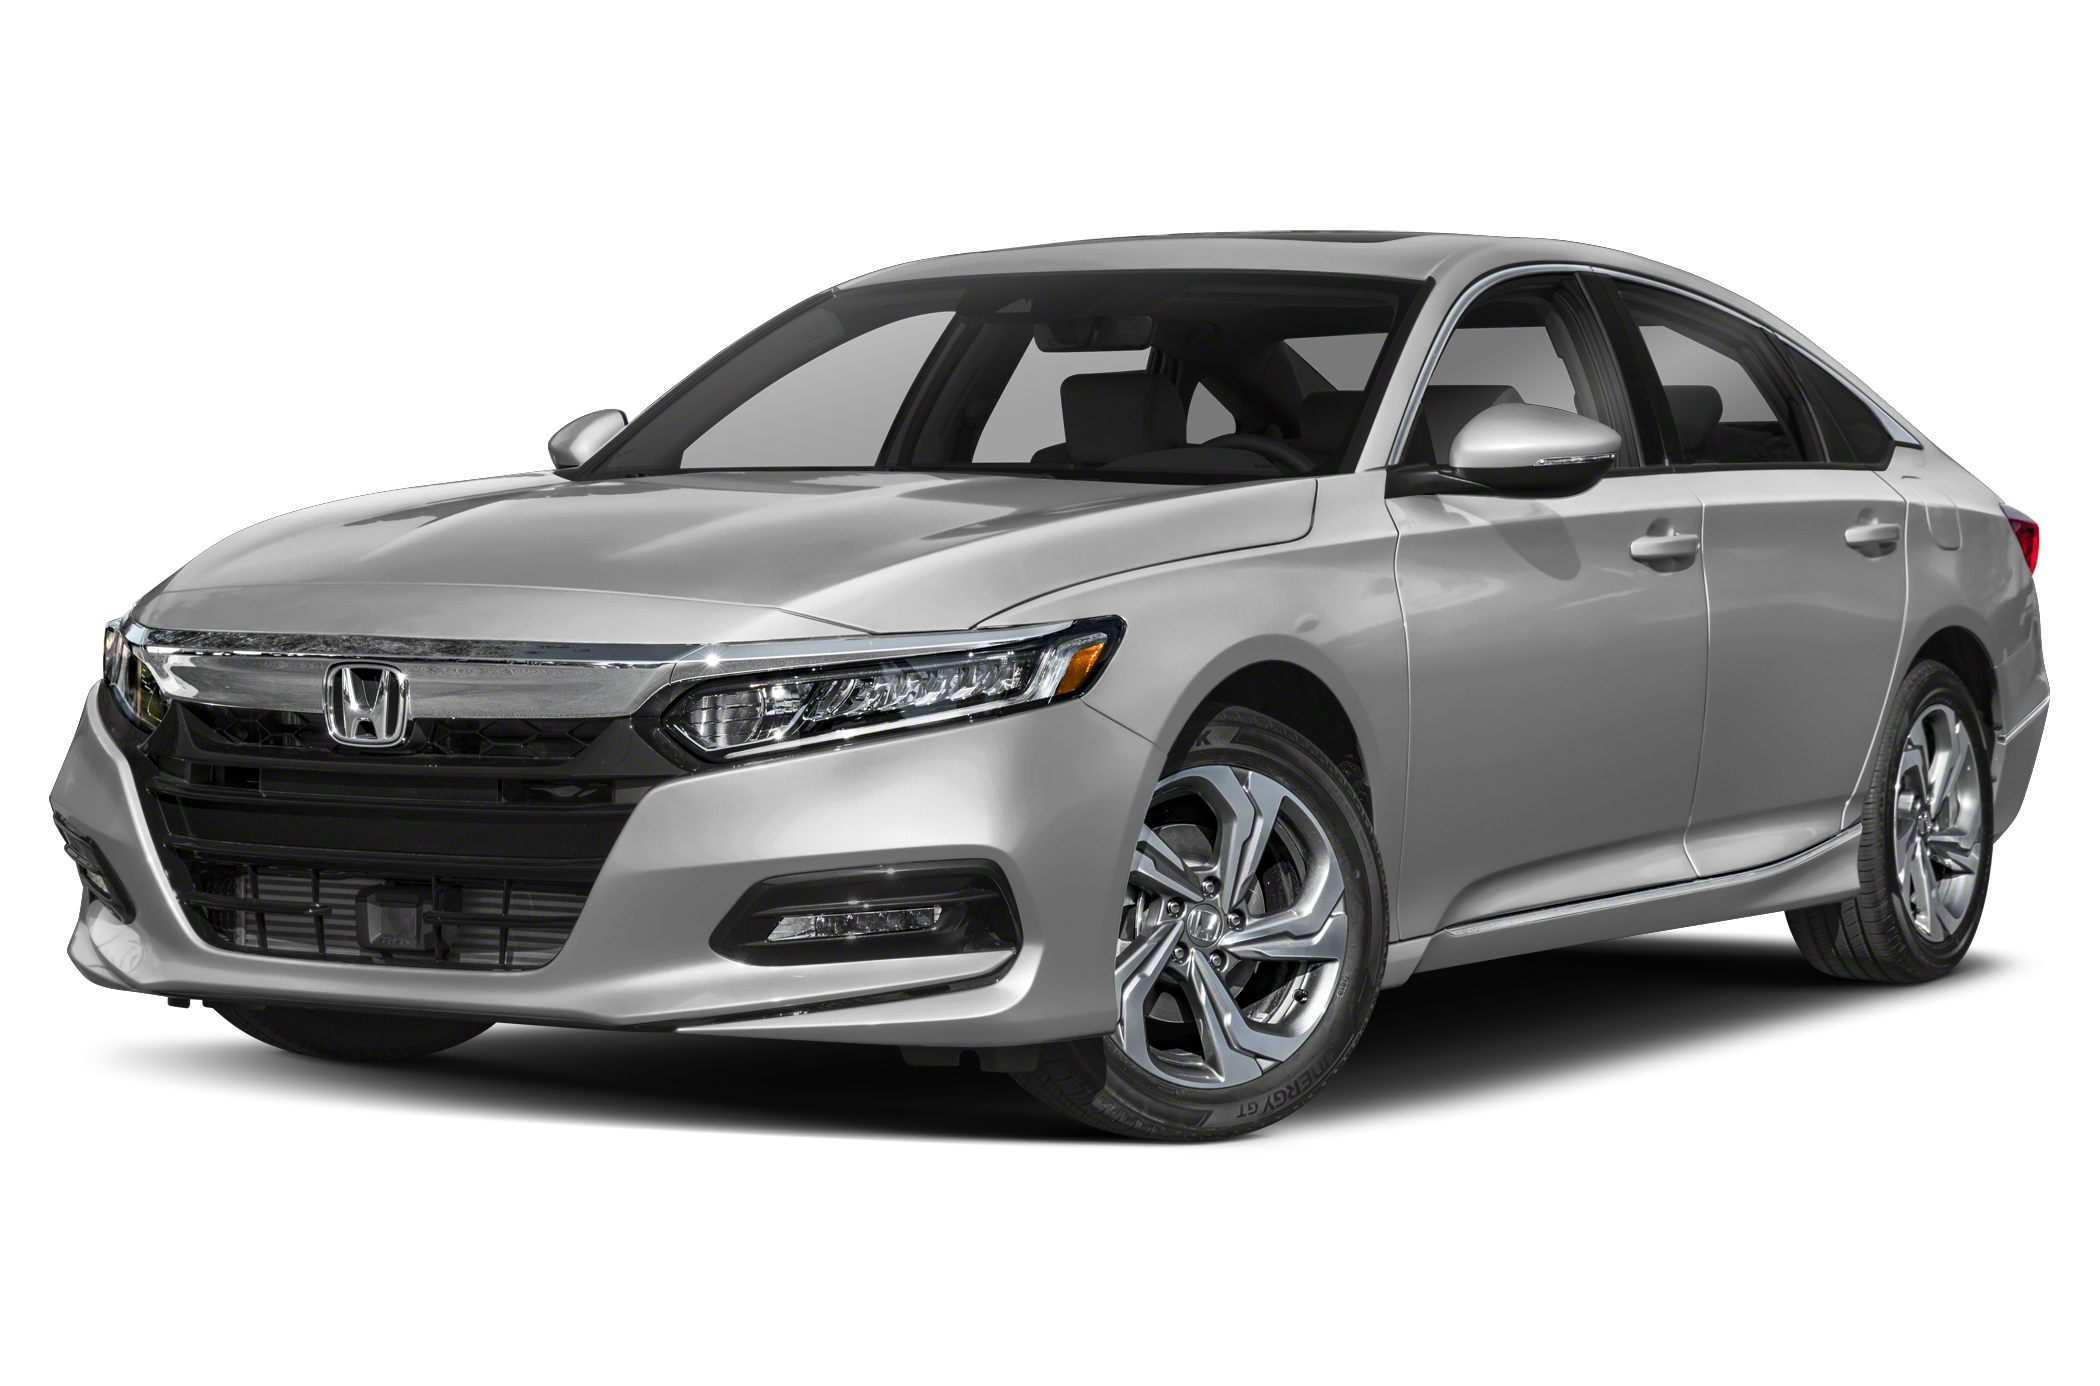 75 All New 2019 Honda Accord Sedan Configurations